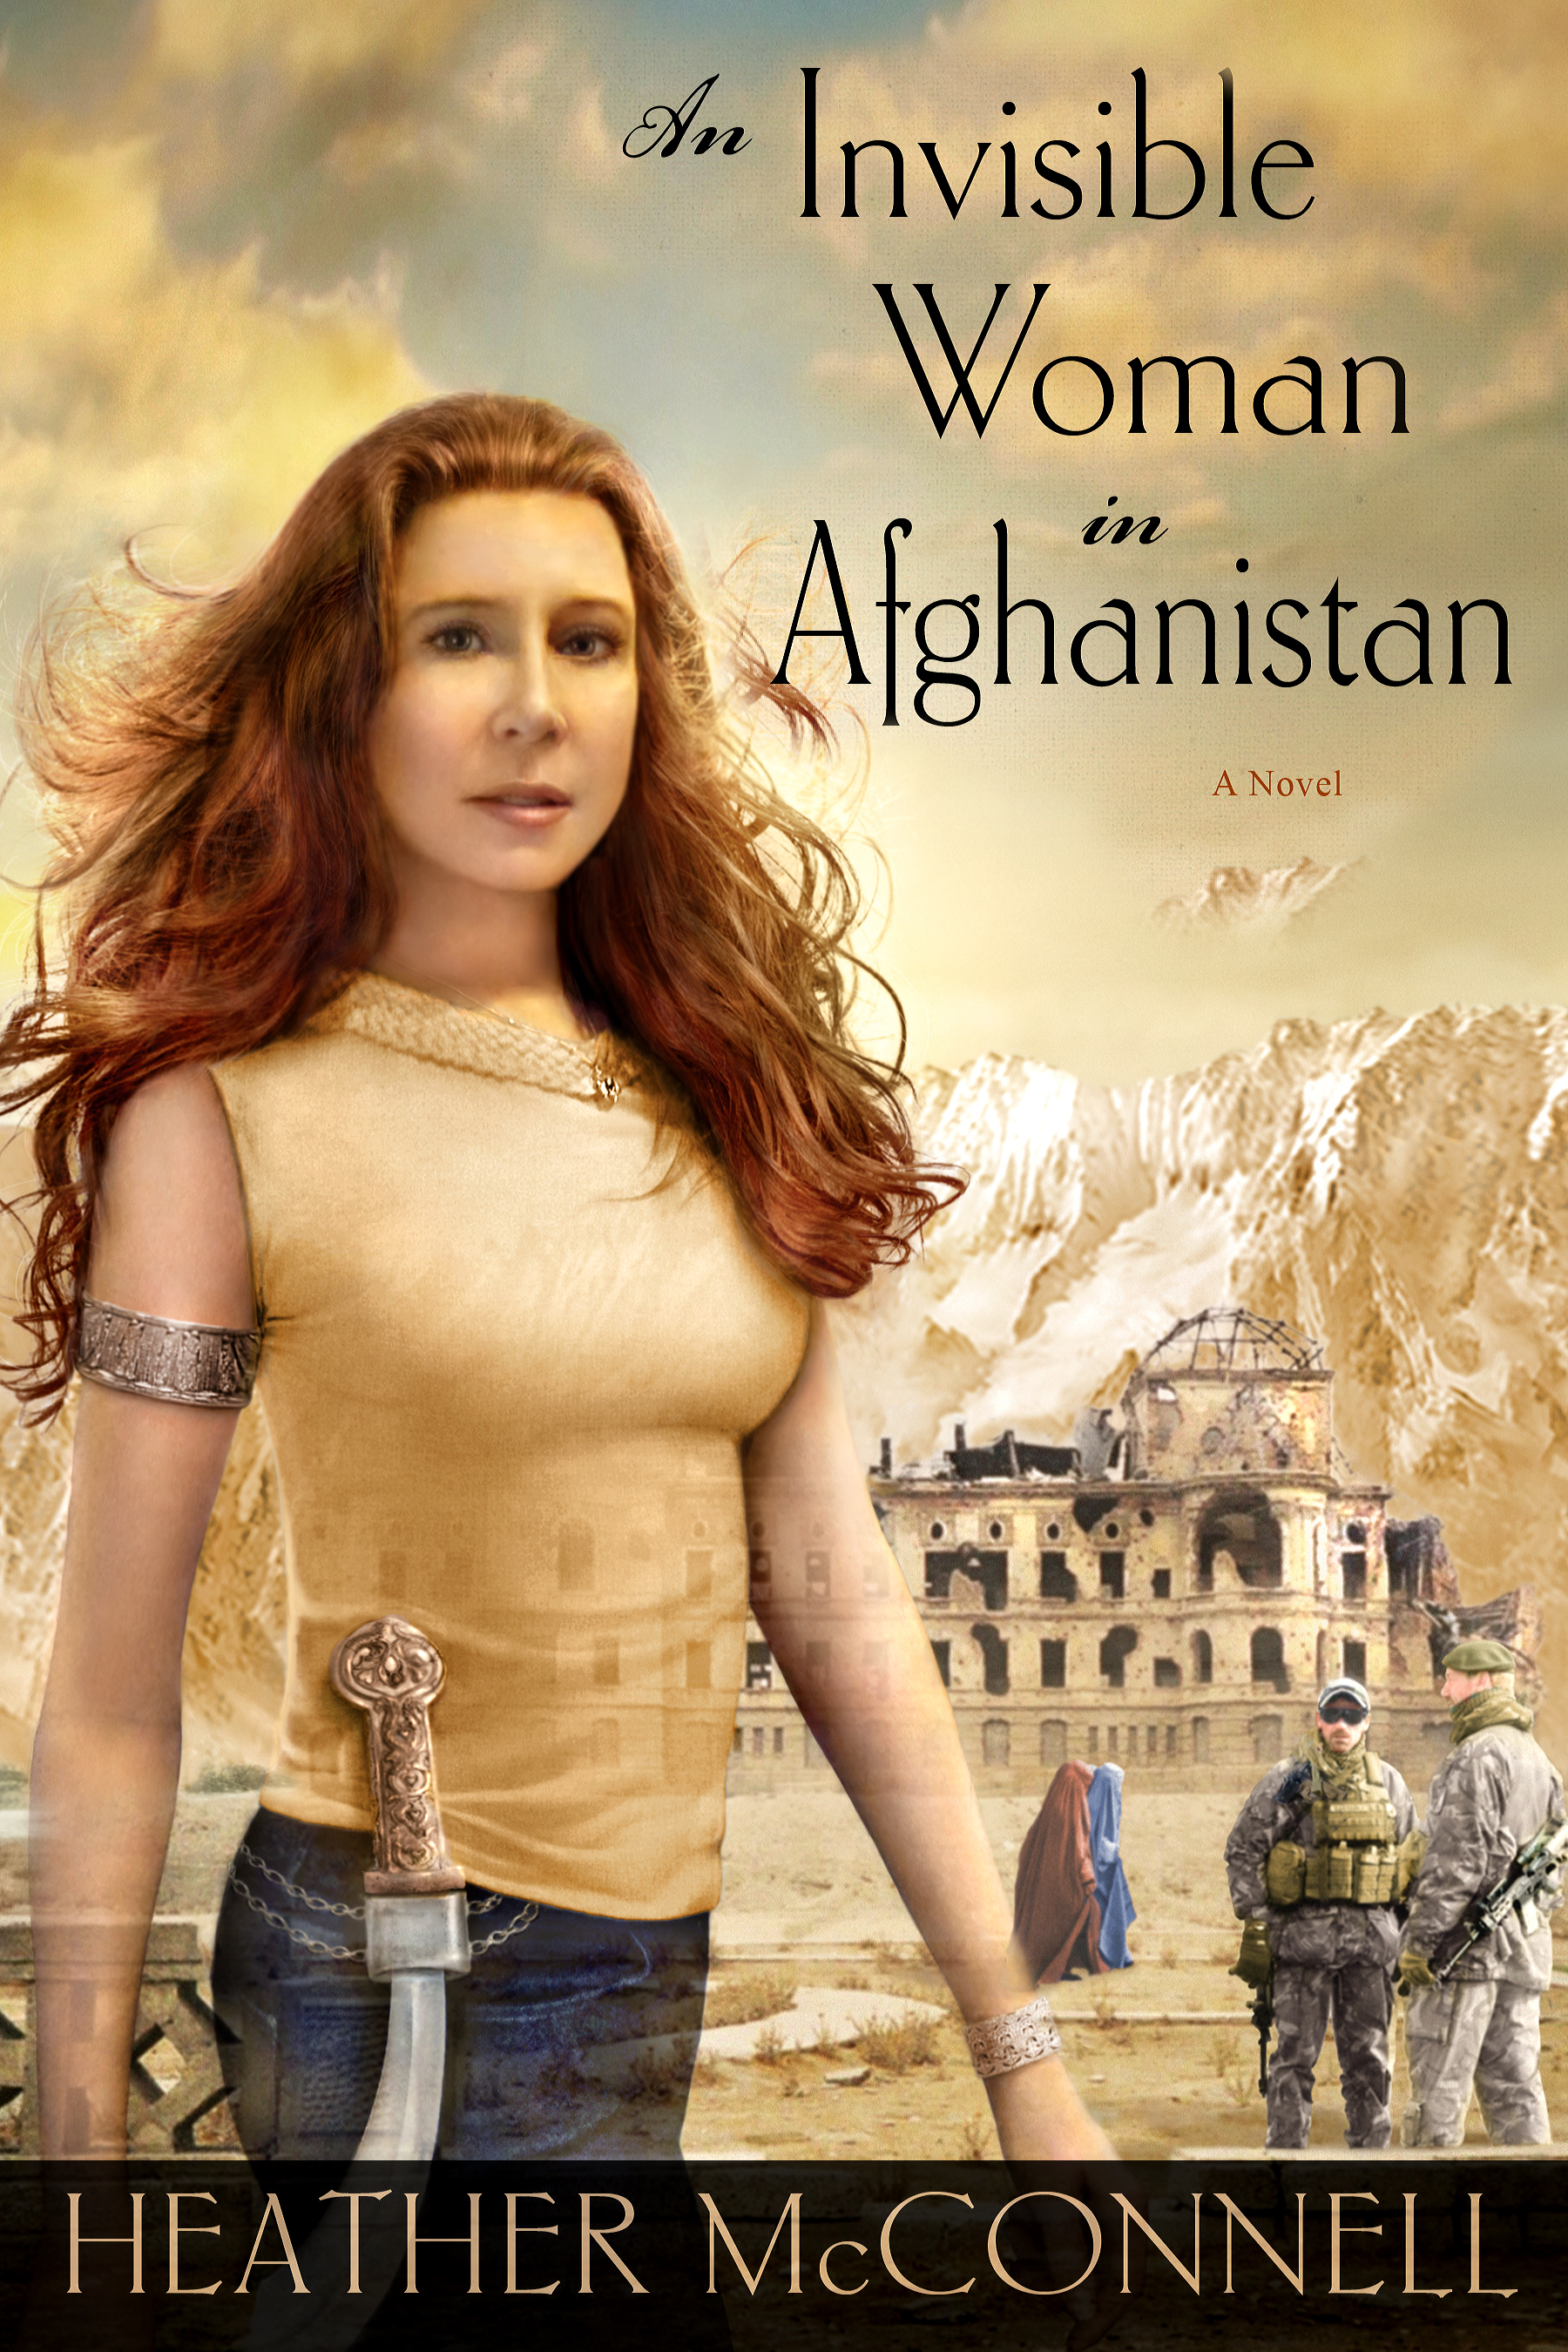 An Invisible Woman, book cover, fantasy publishing, book cover design.jpg